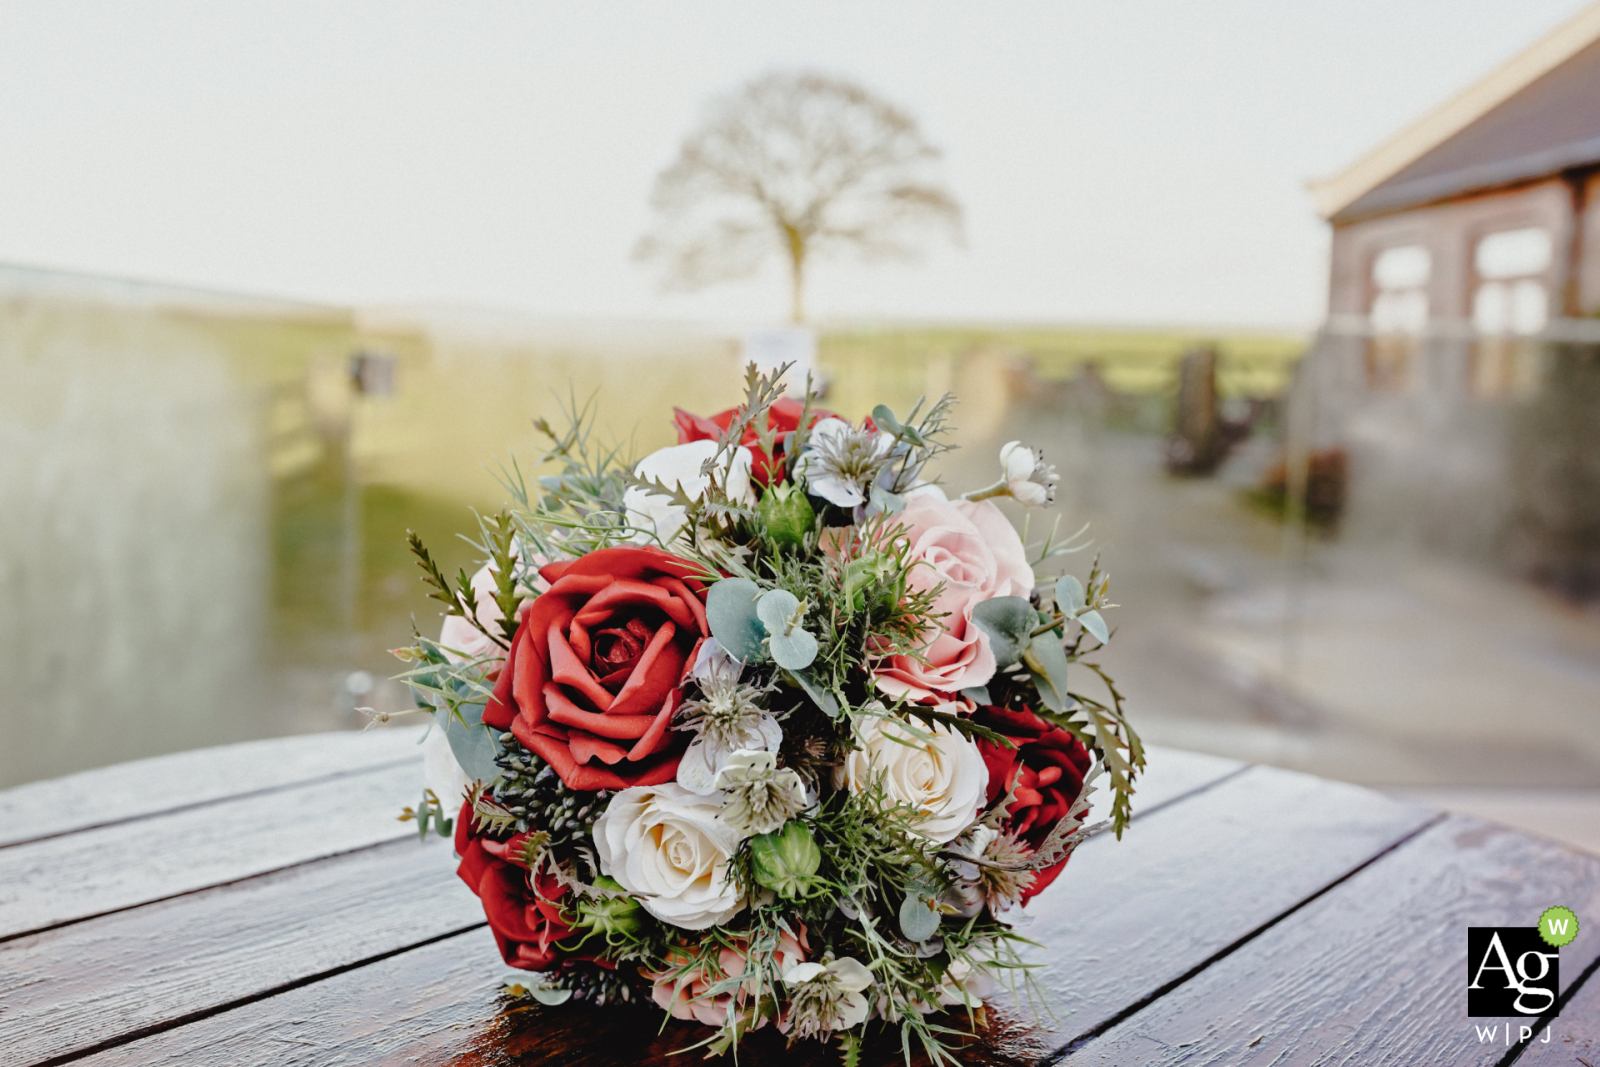 Heaton House Farm, Manchester, England wedding detail photographyshowing the brides bouquet with tree in background